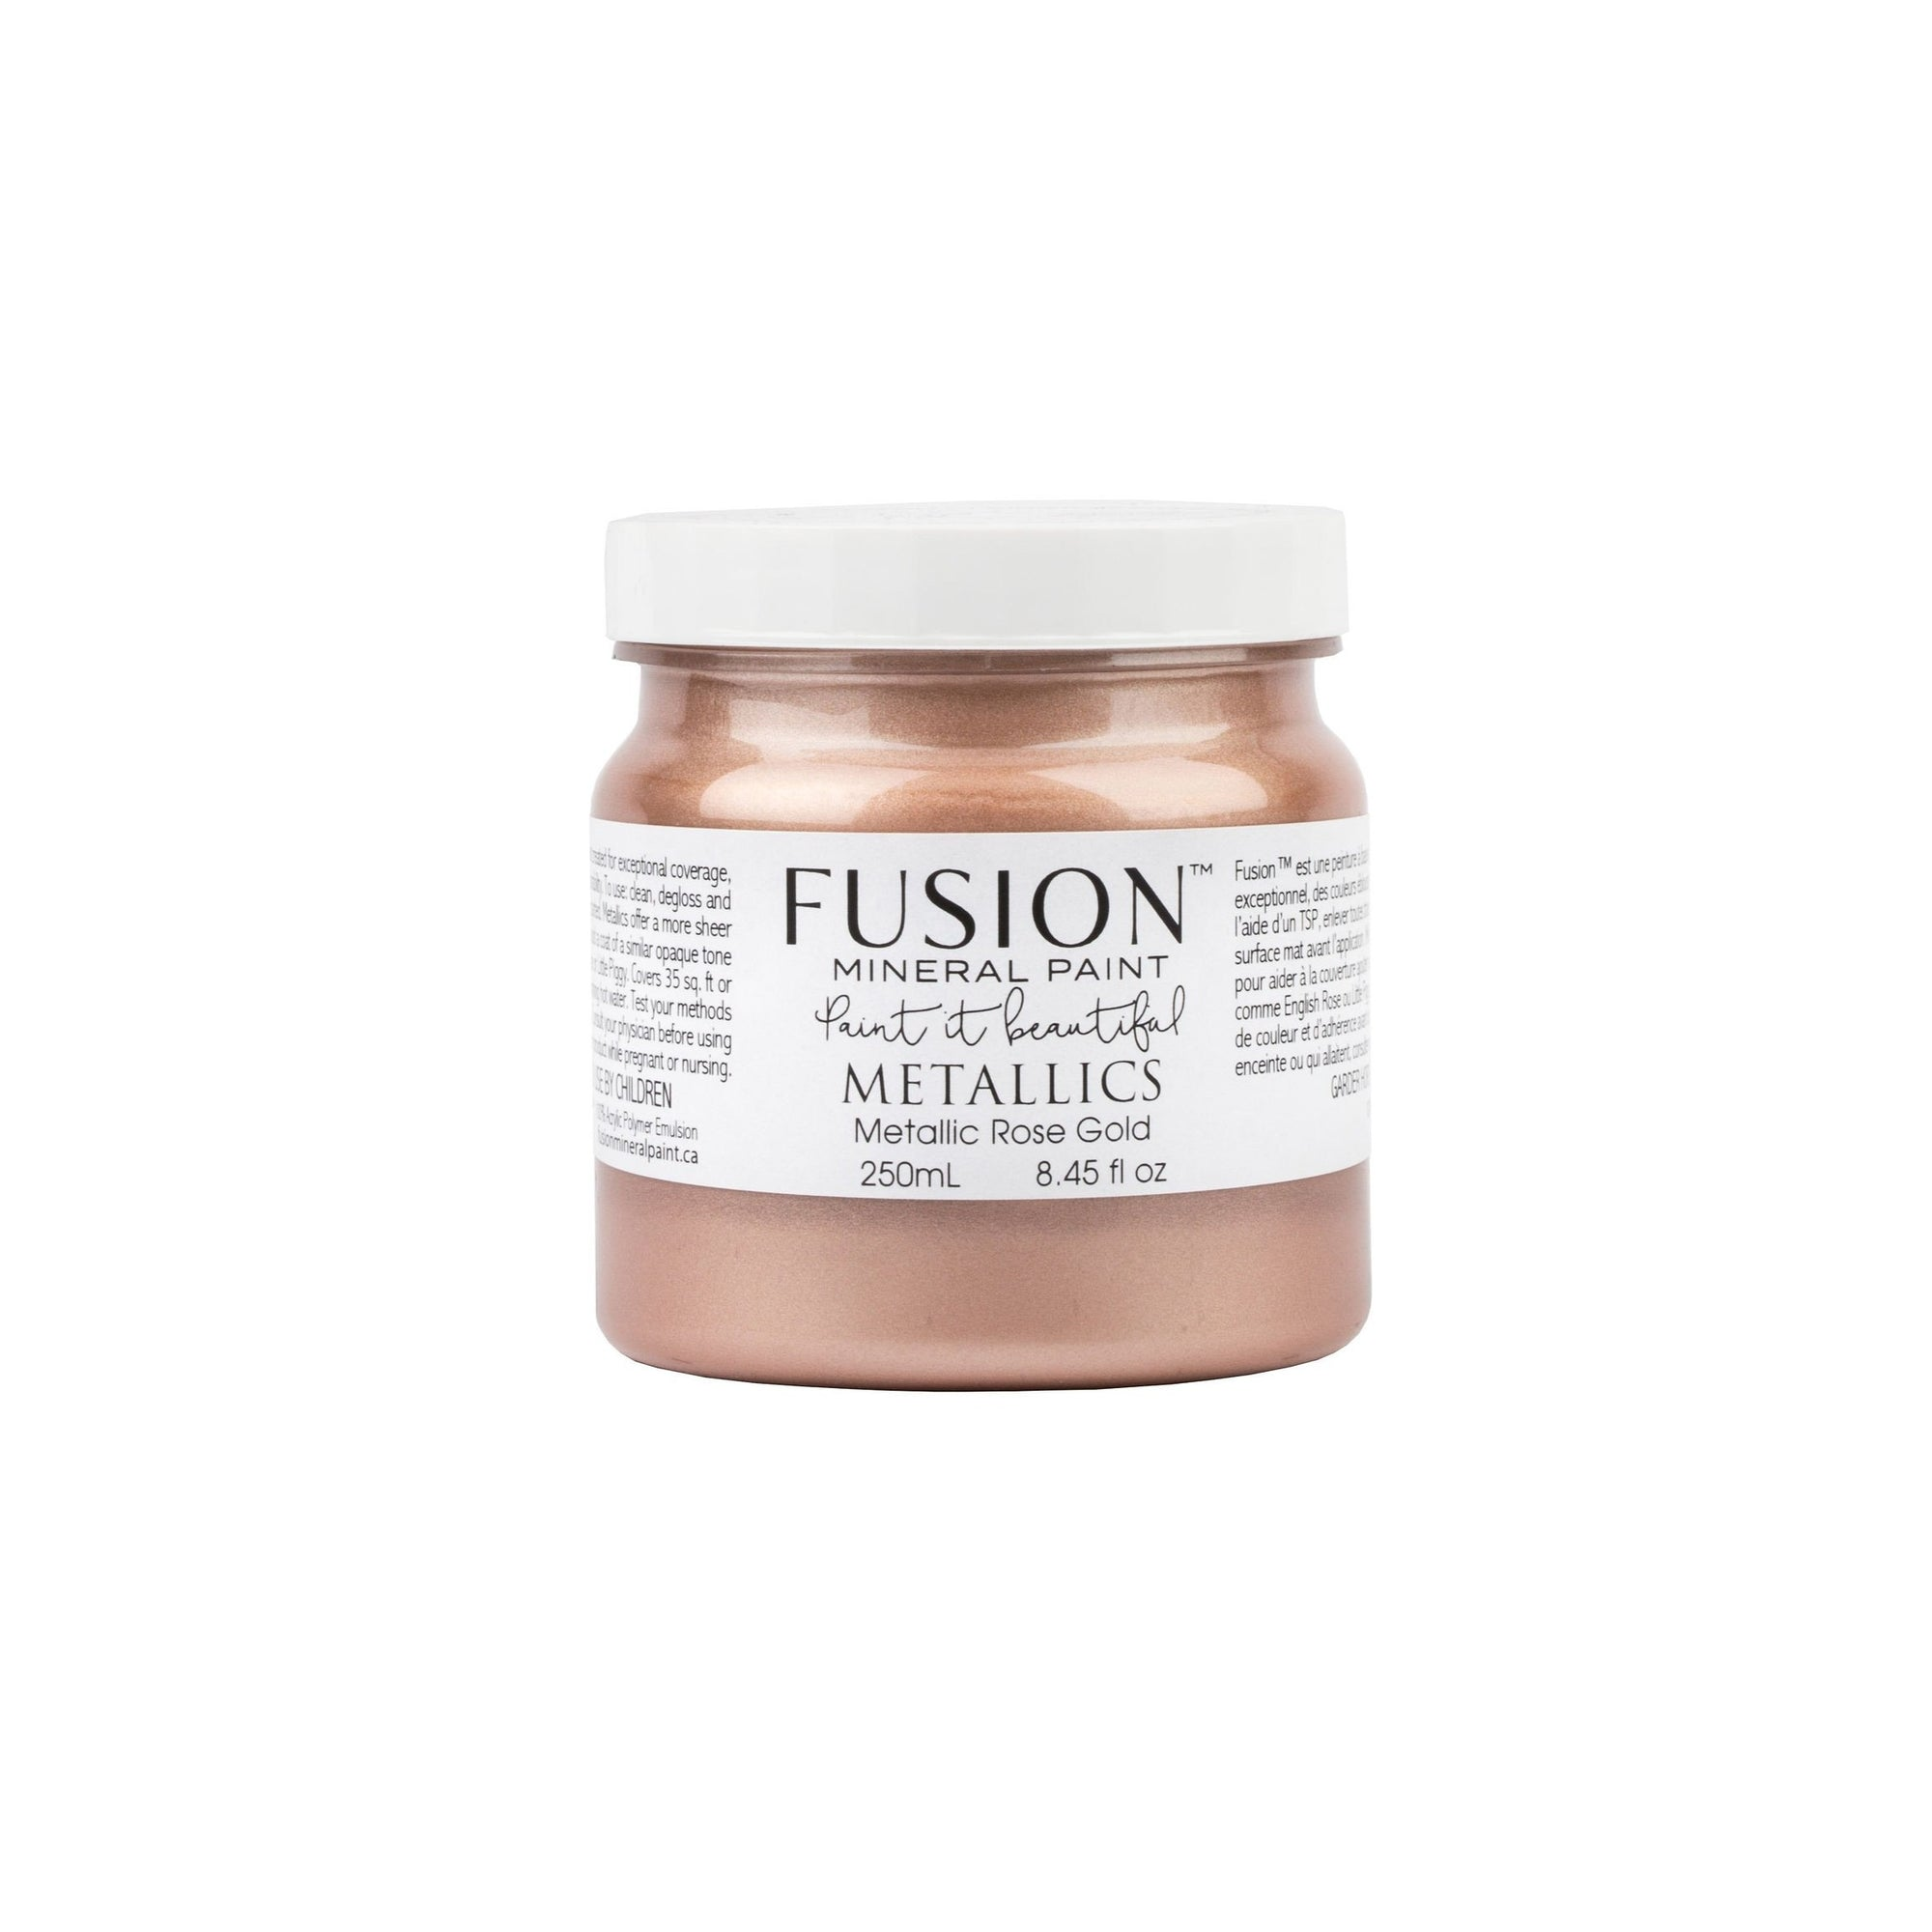 fusion mineral paint farmhouse inspired metallic rose gold